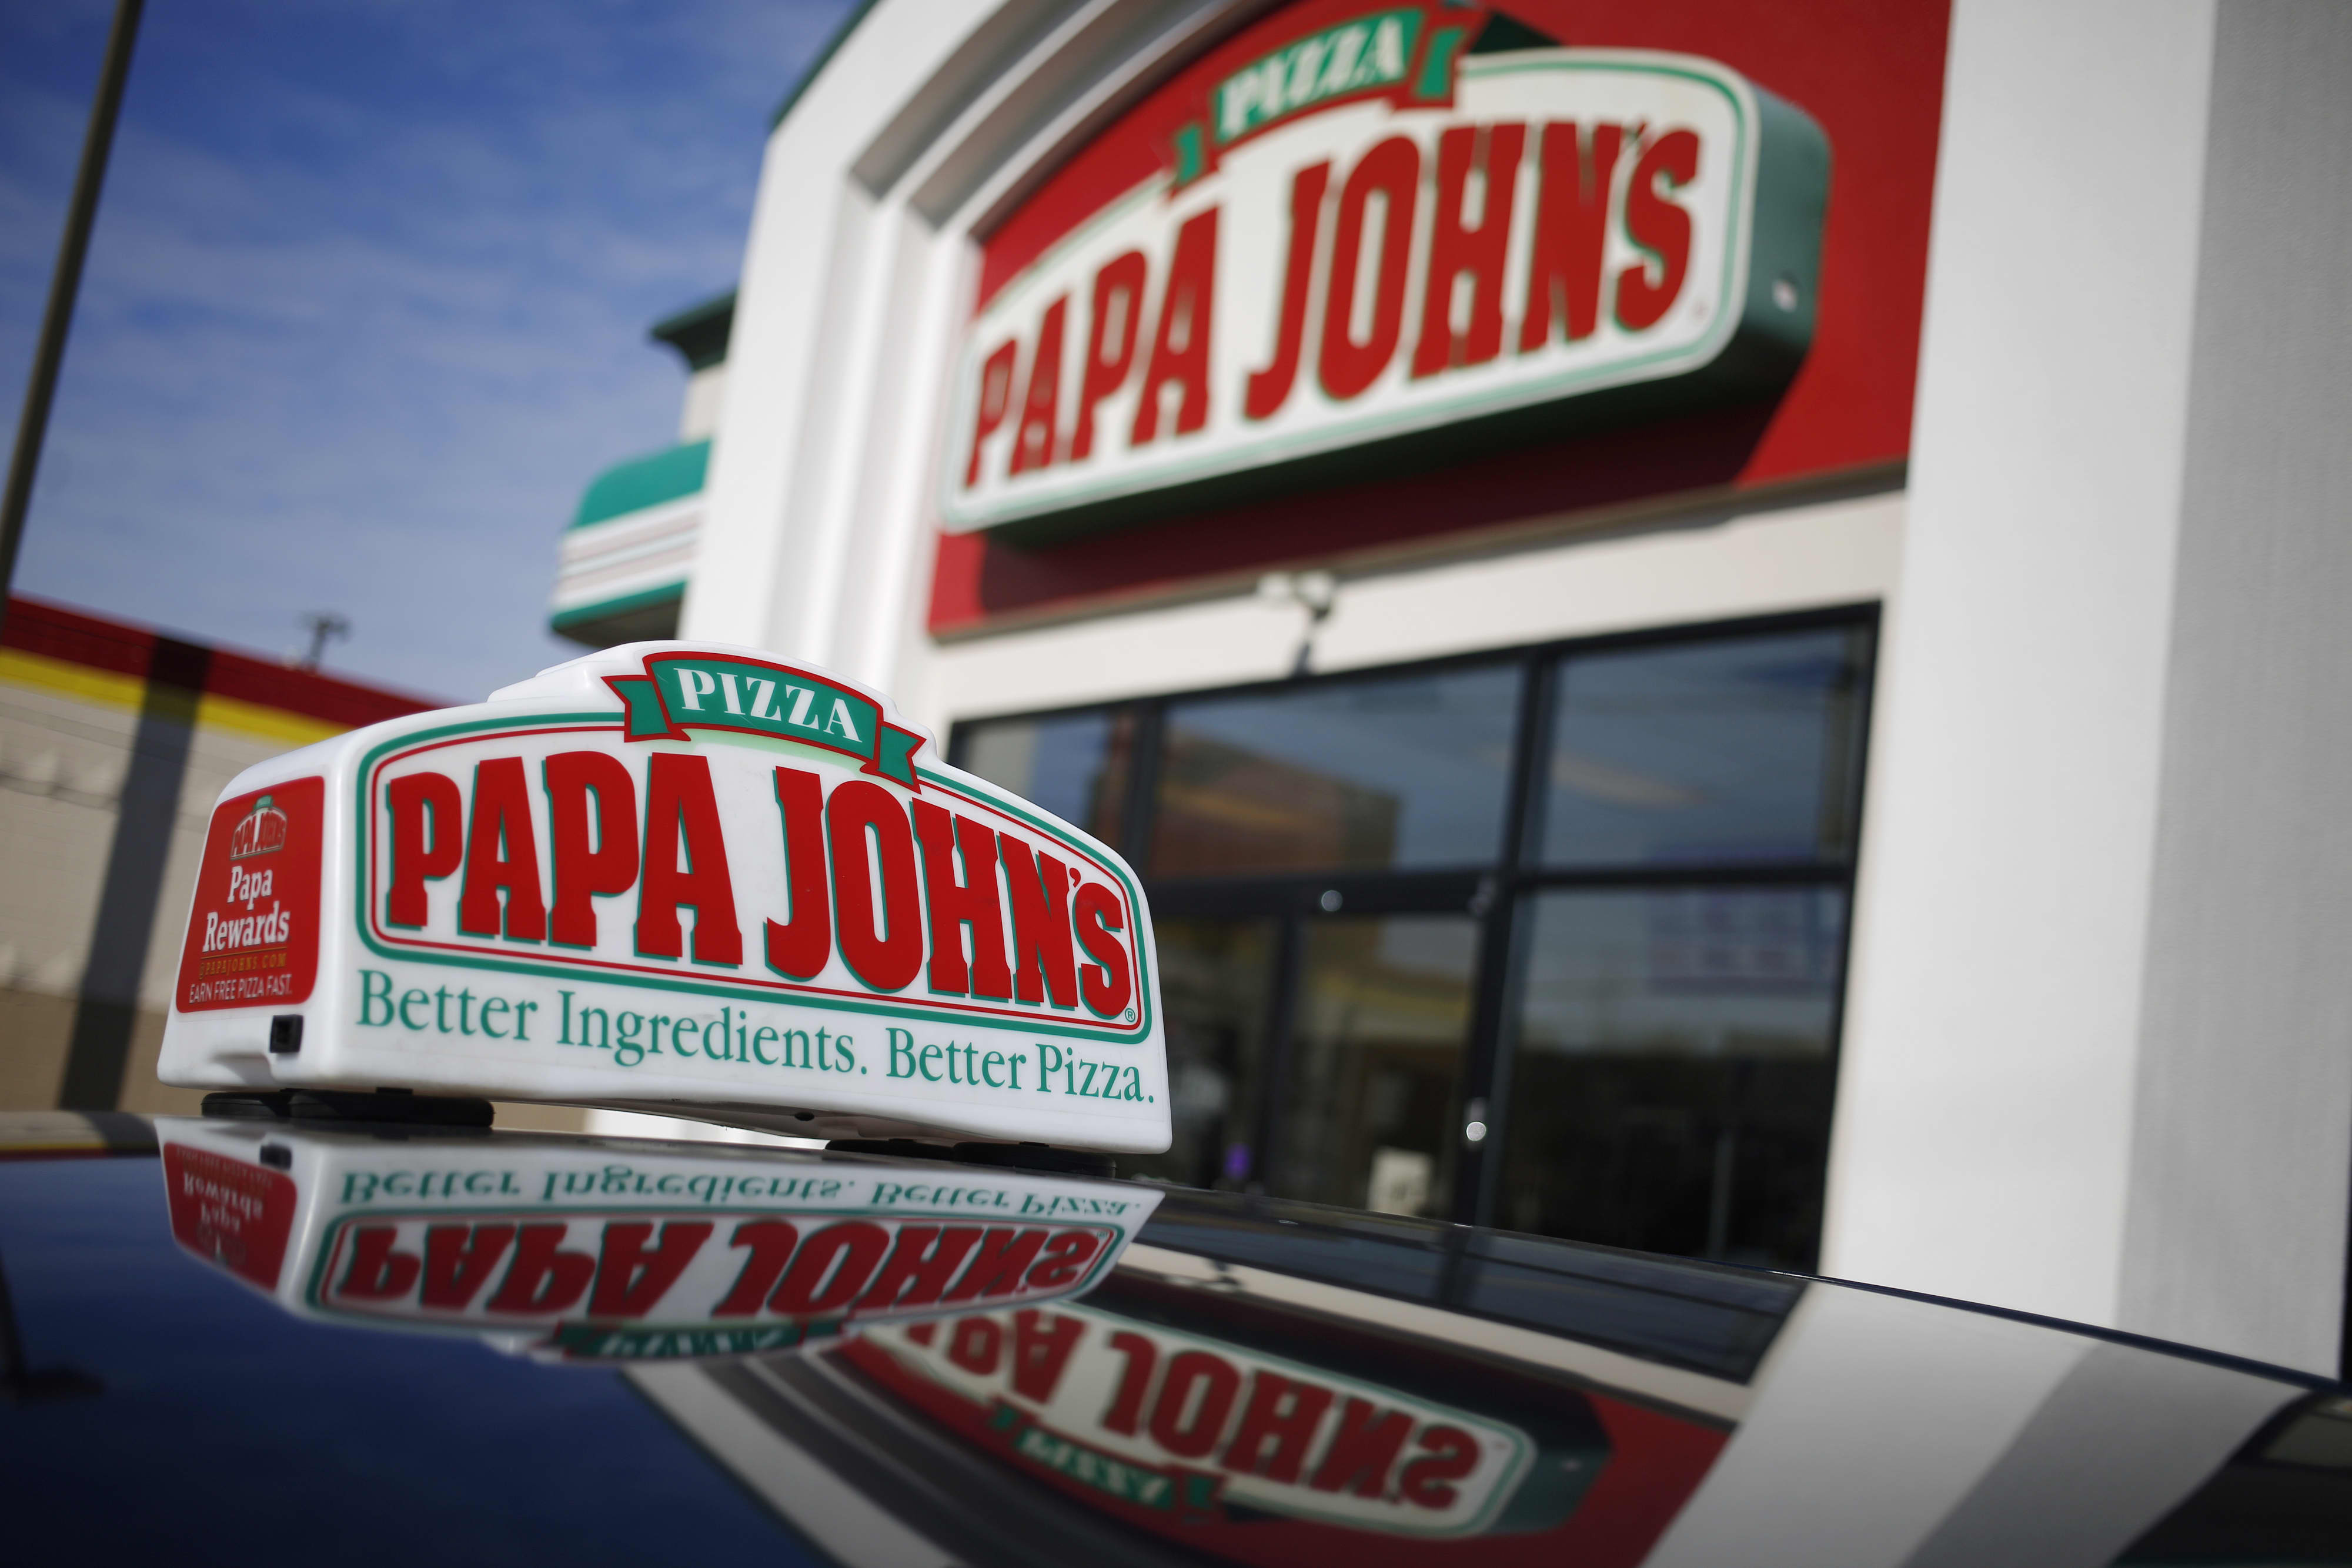 Papa John's stock jumps after executive reshuffle announcement and revenue beat